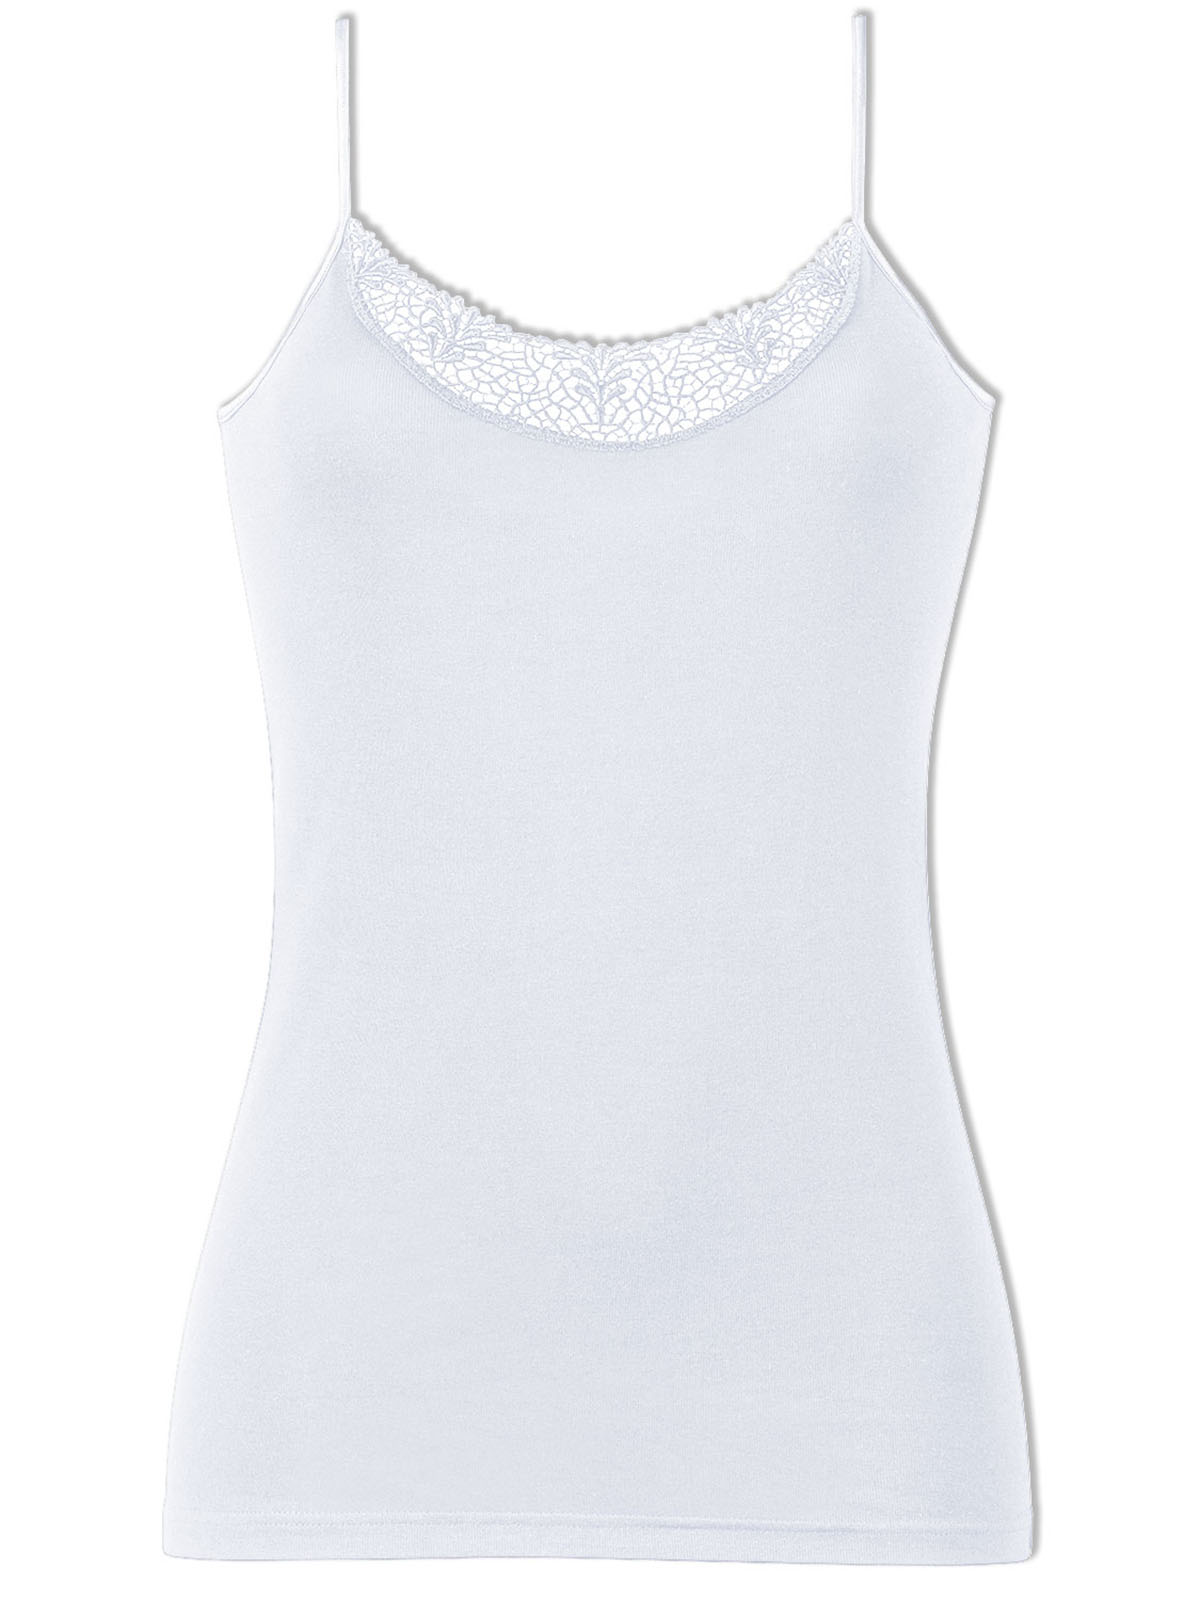 NATURANA Women's Vest with Etched Embroidery 2603